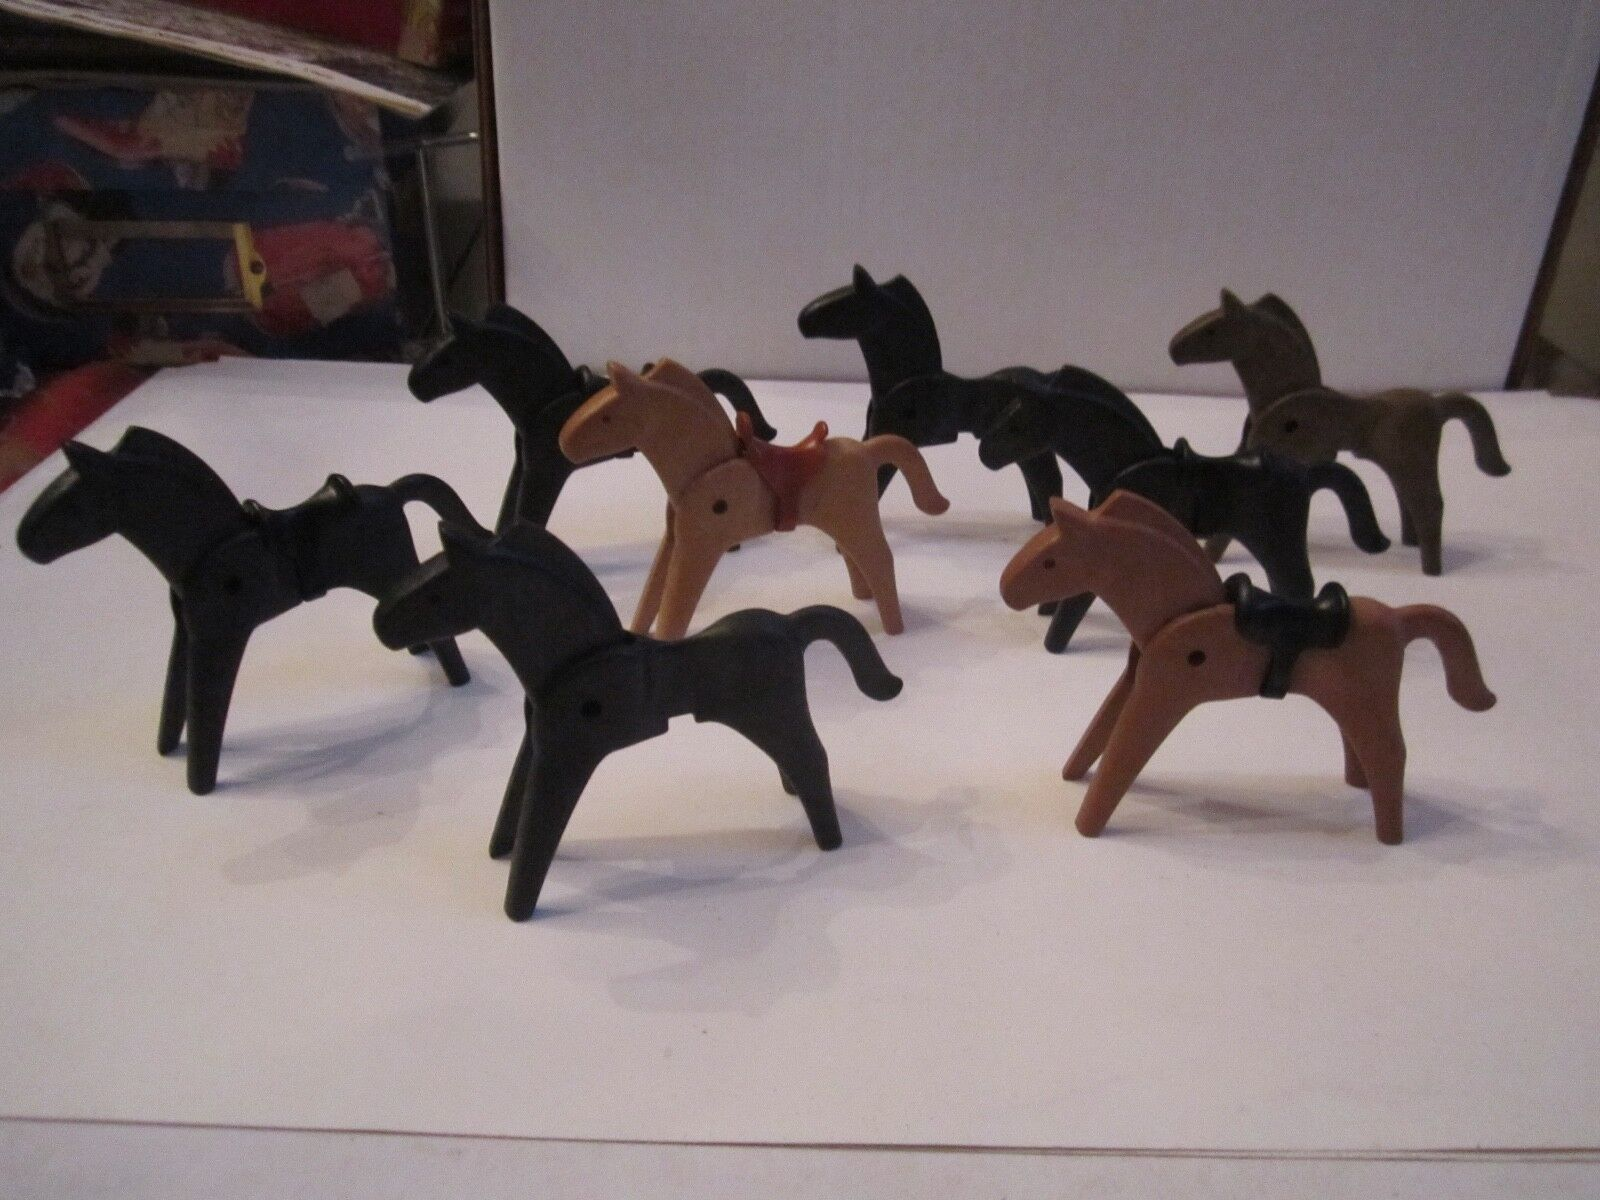 8  1974 GEOBRA HORSES - VINTAGE AND COLLECTIBLE - TUB BN-18